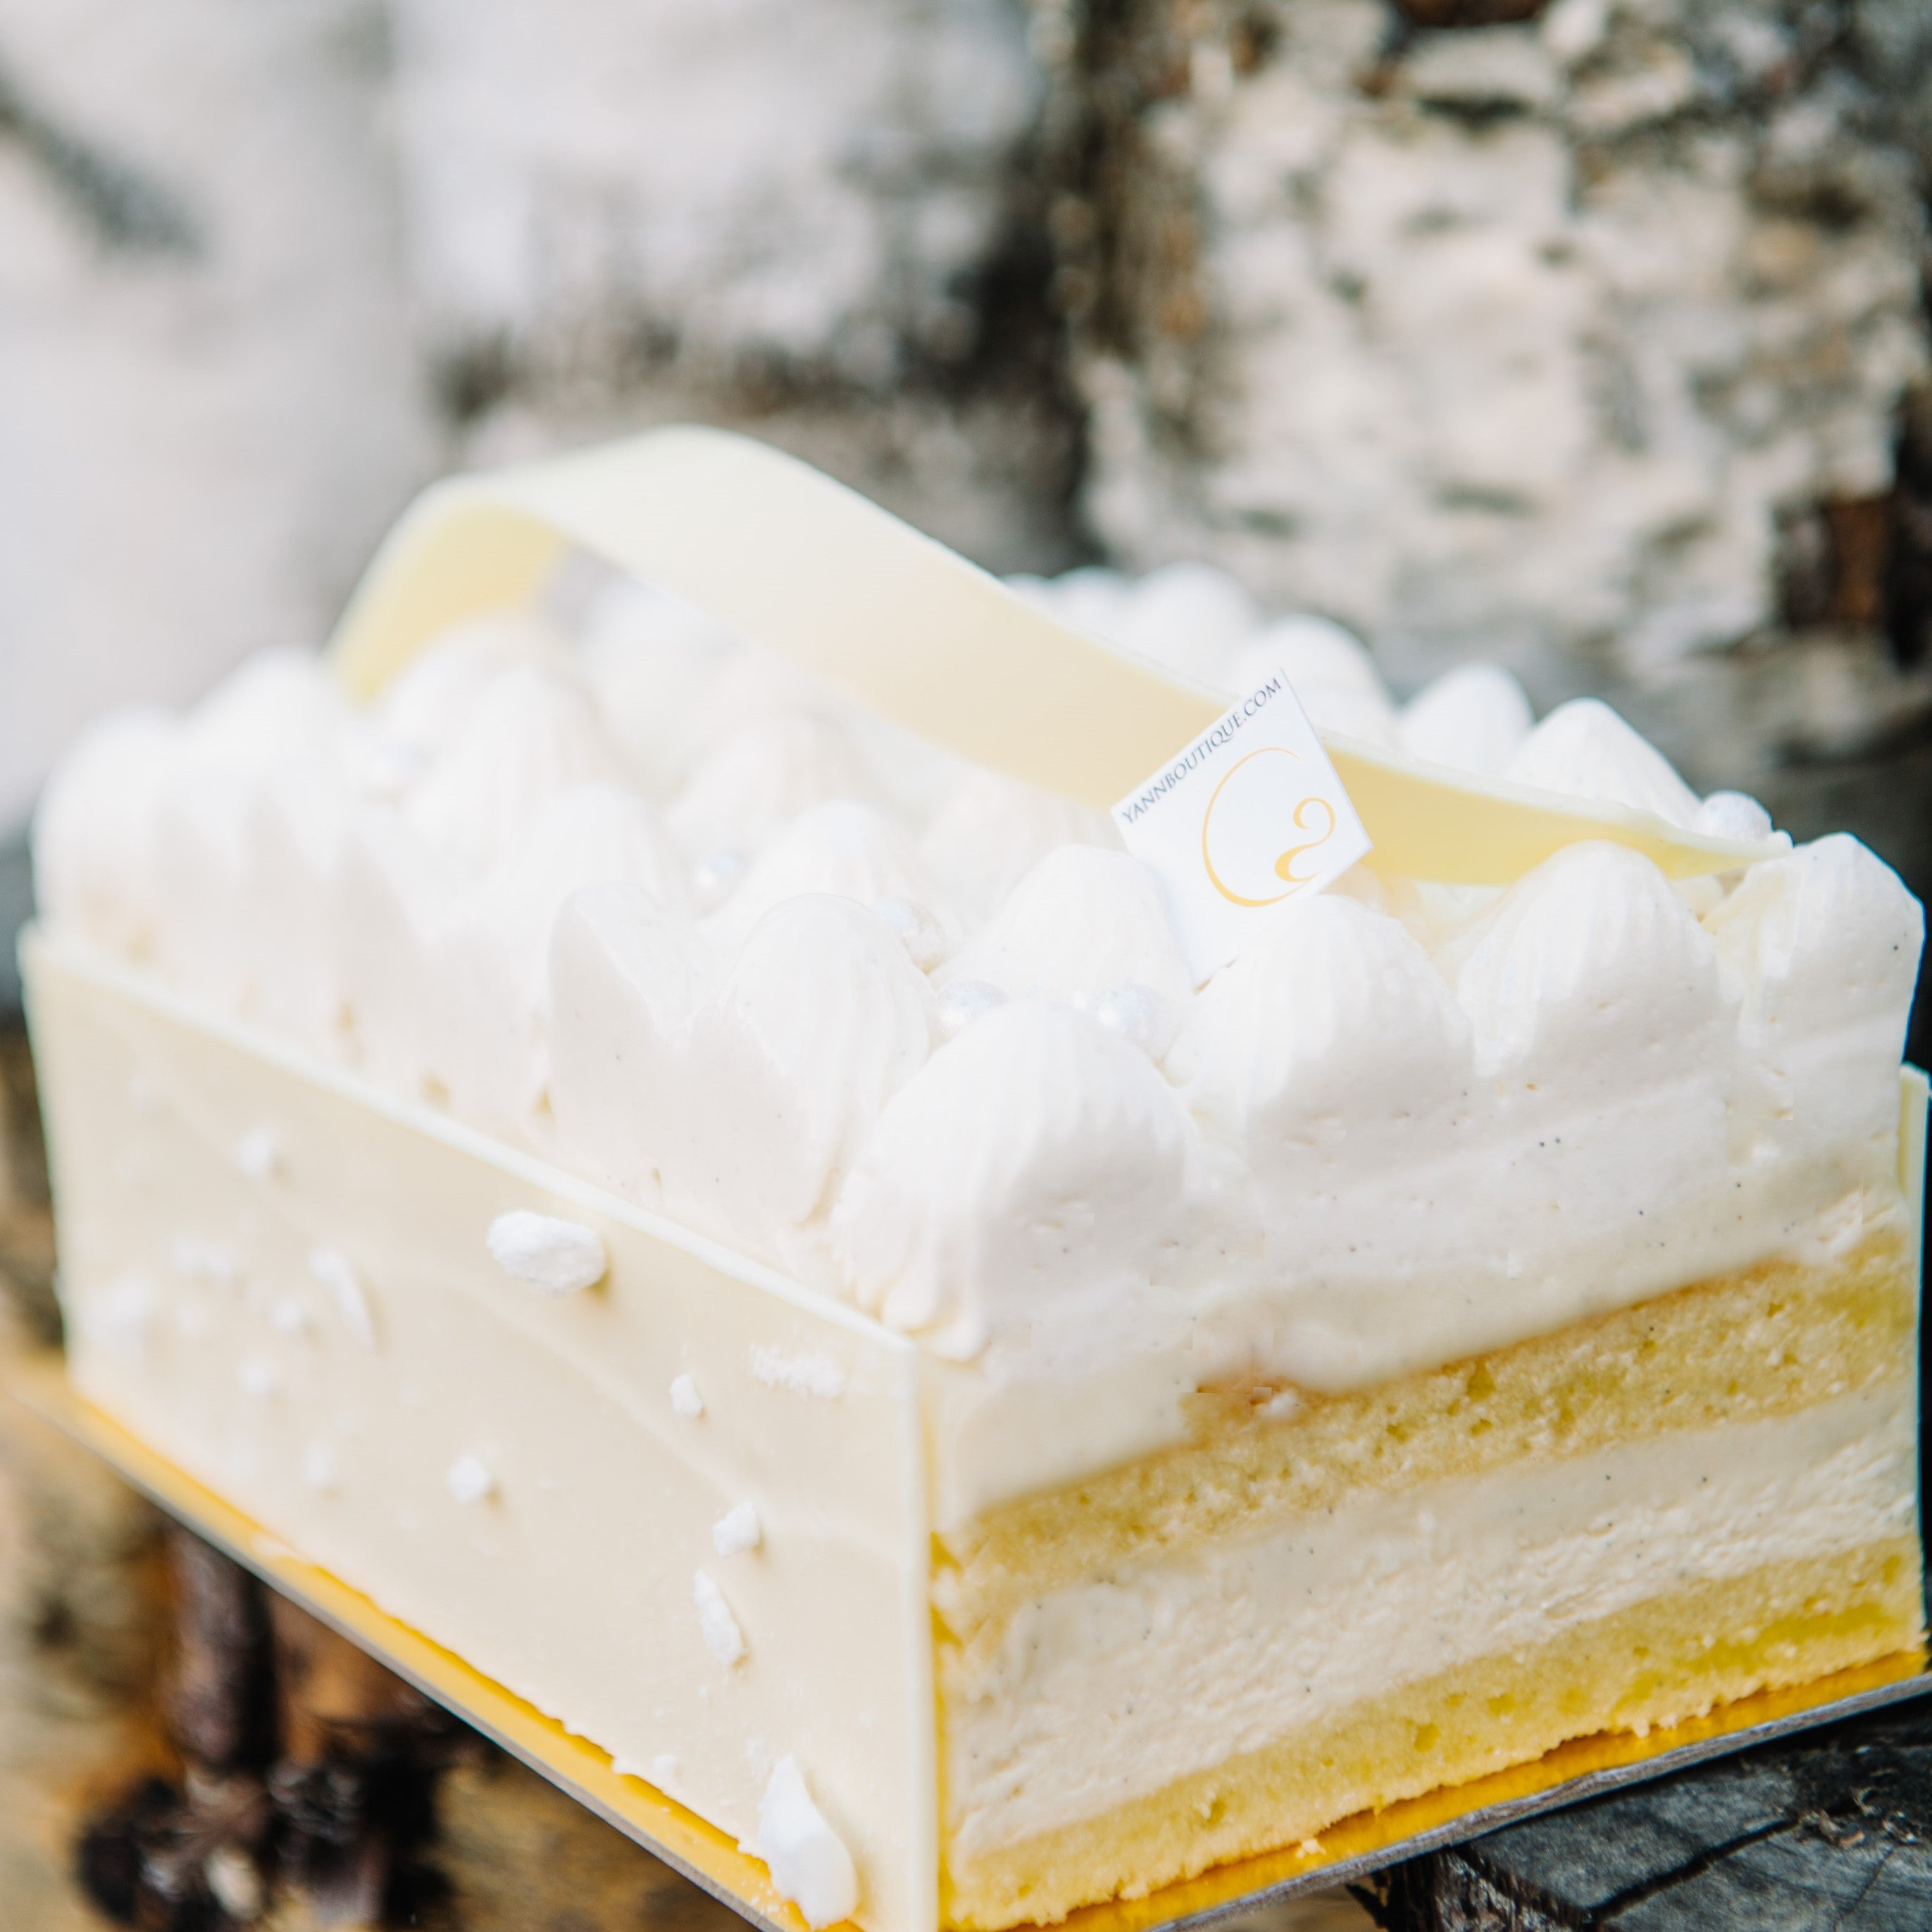 White Forest for vanilla lovers. Best vanilla cake in Calgary by Yann Blanchard